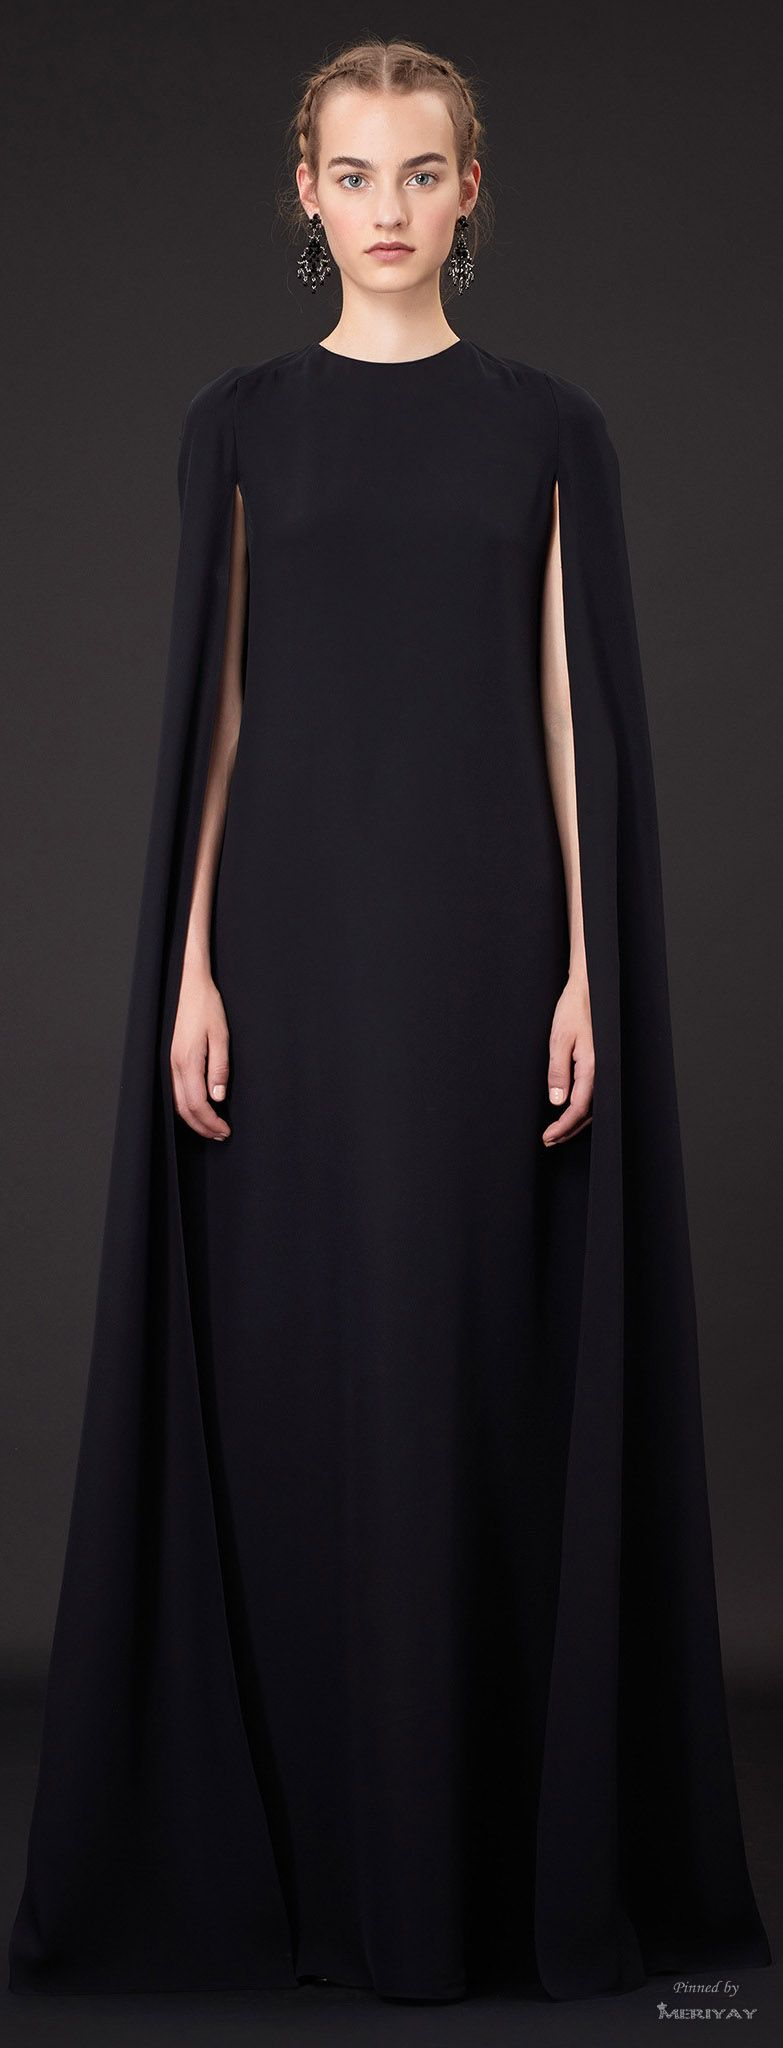 Understated elegance long black cape dress with clean minimal